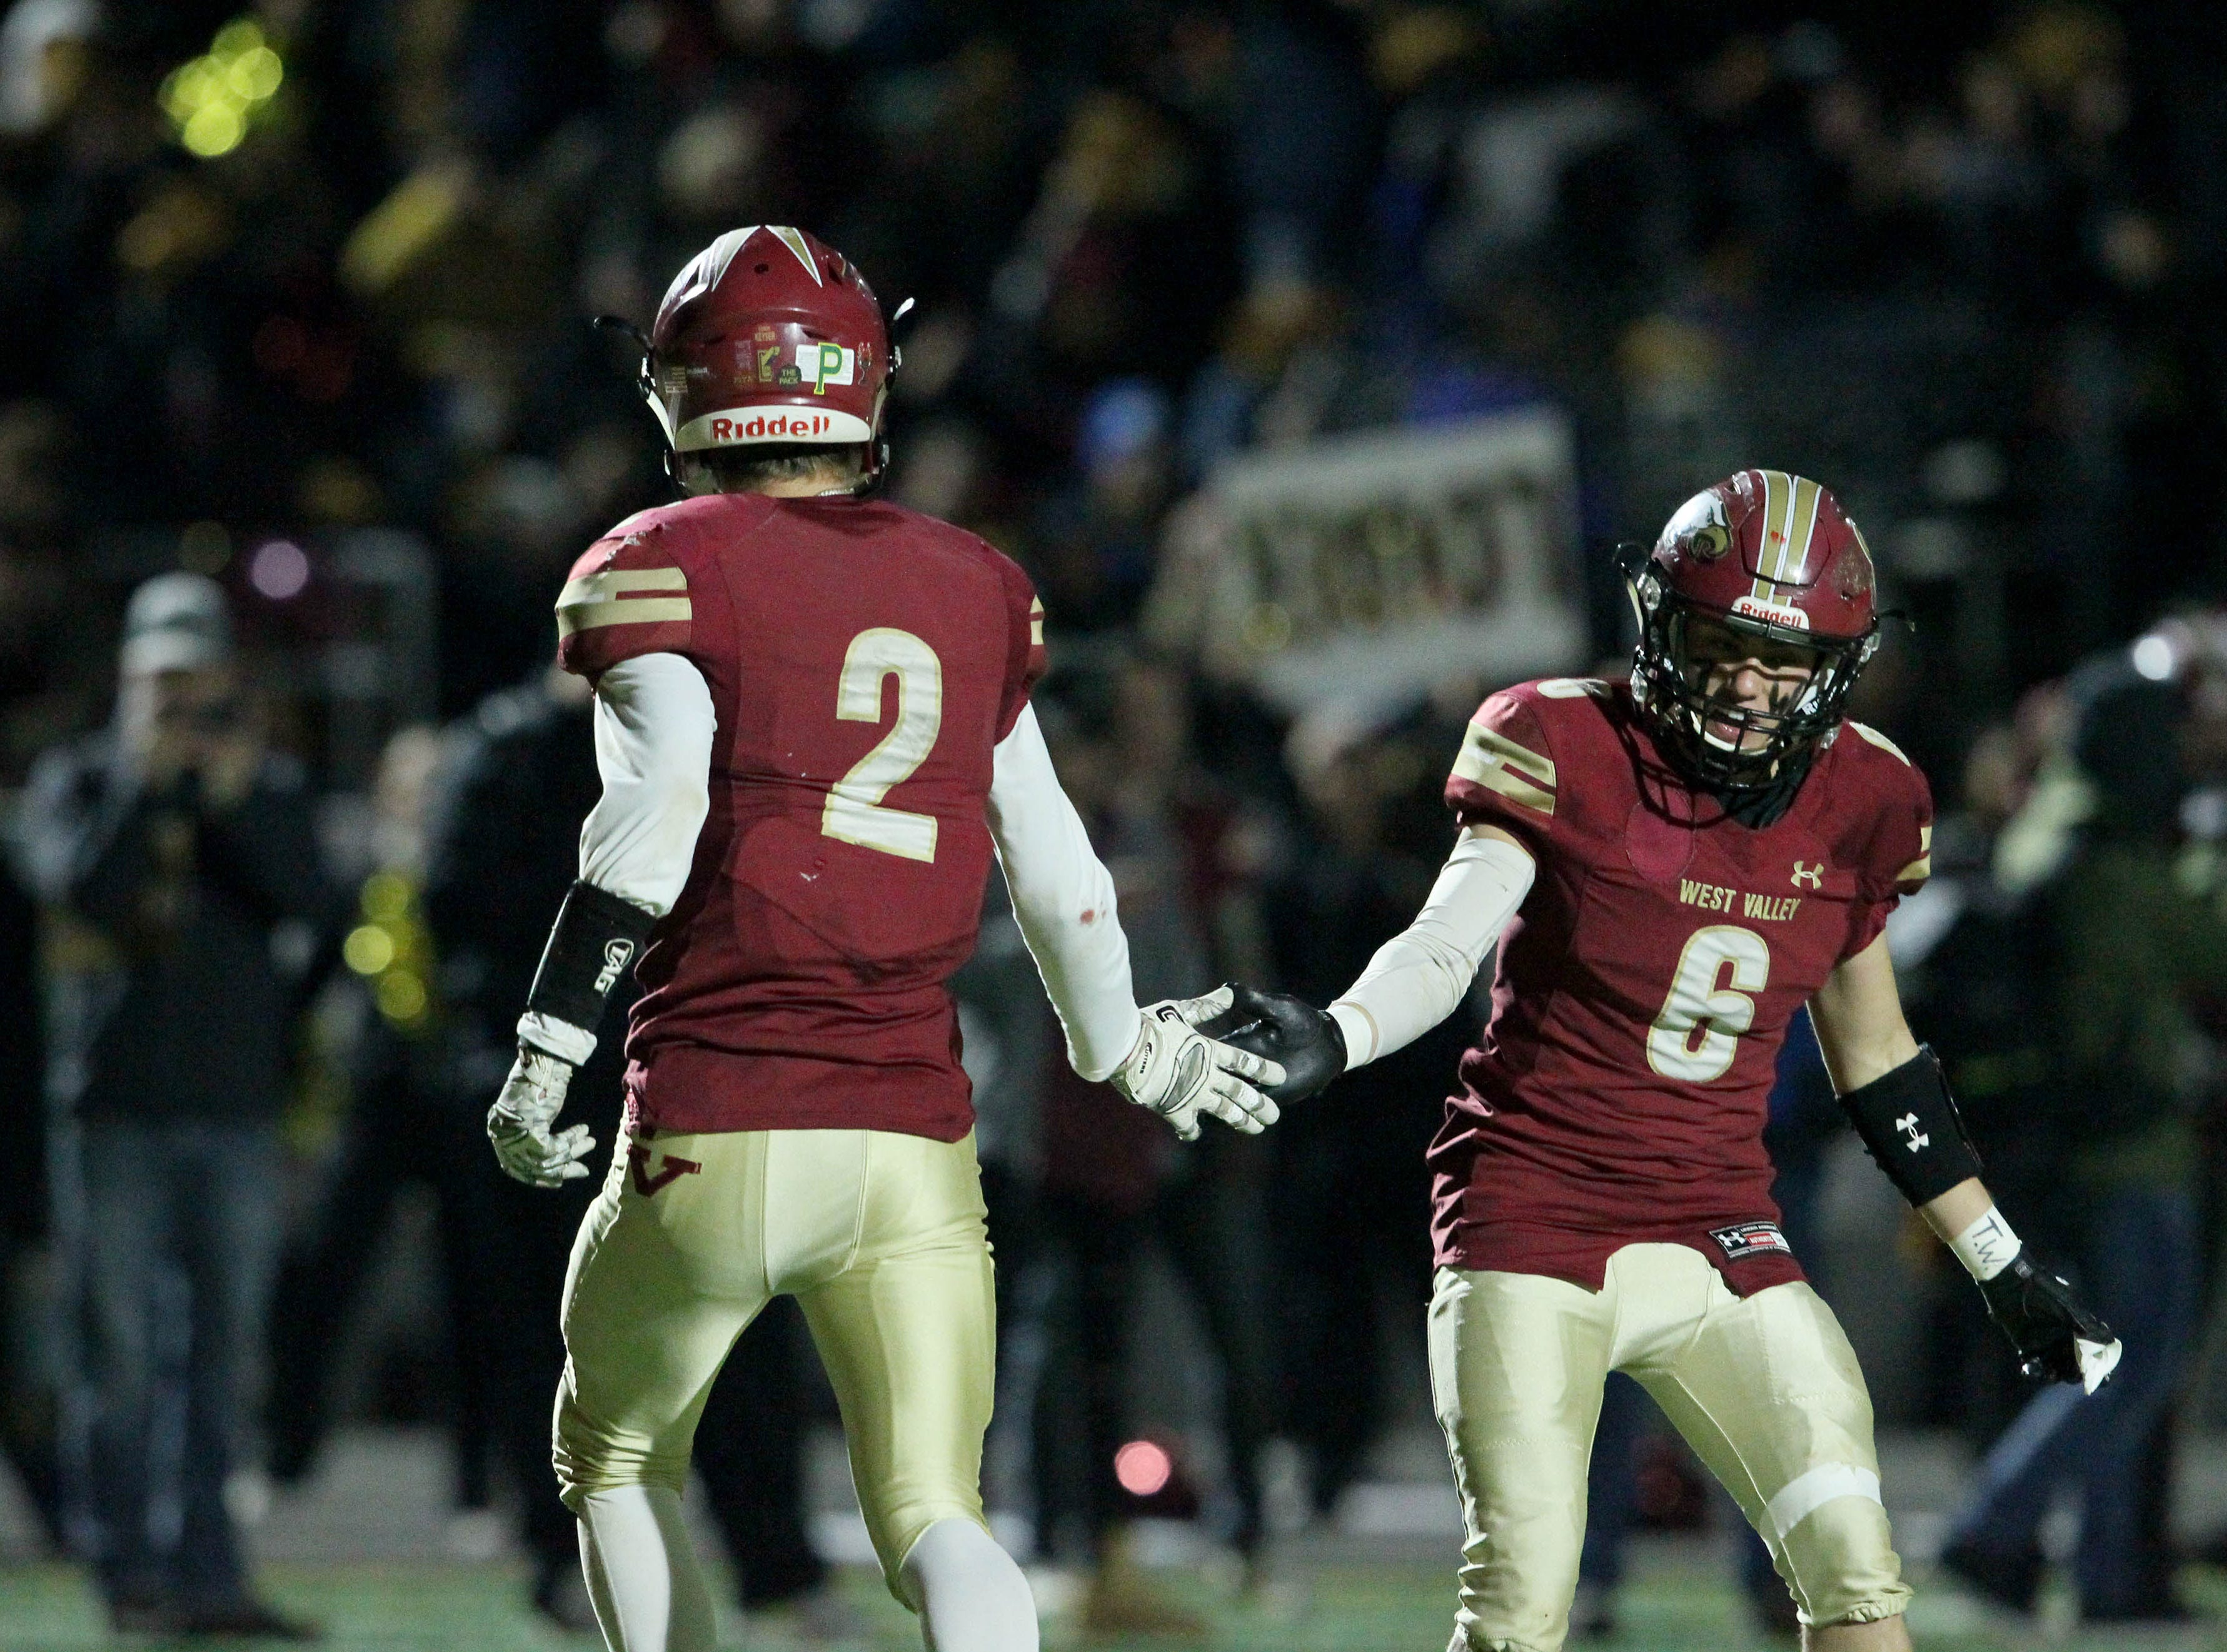 West Valley's Devin Low (2) and Dagen Johnson (6) high five in the first half of the NorCal regional title game for Division 5-AA in Red Bluff on Friday, Dec. 7.